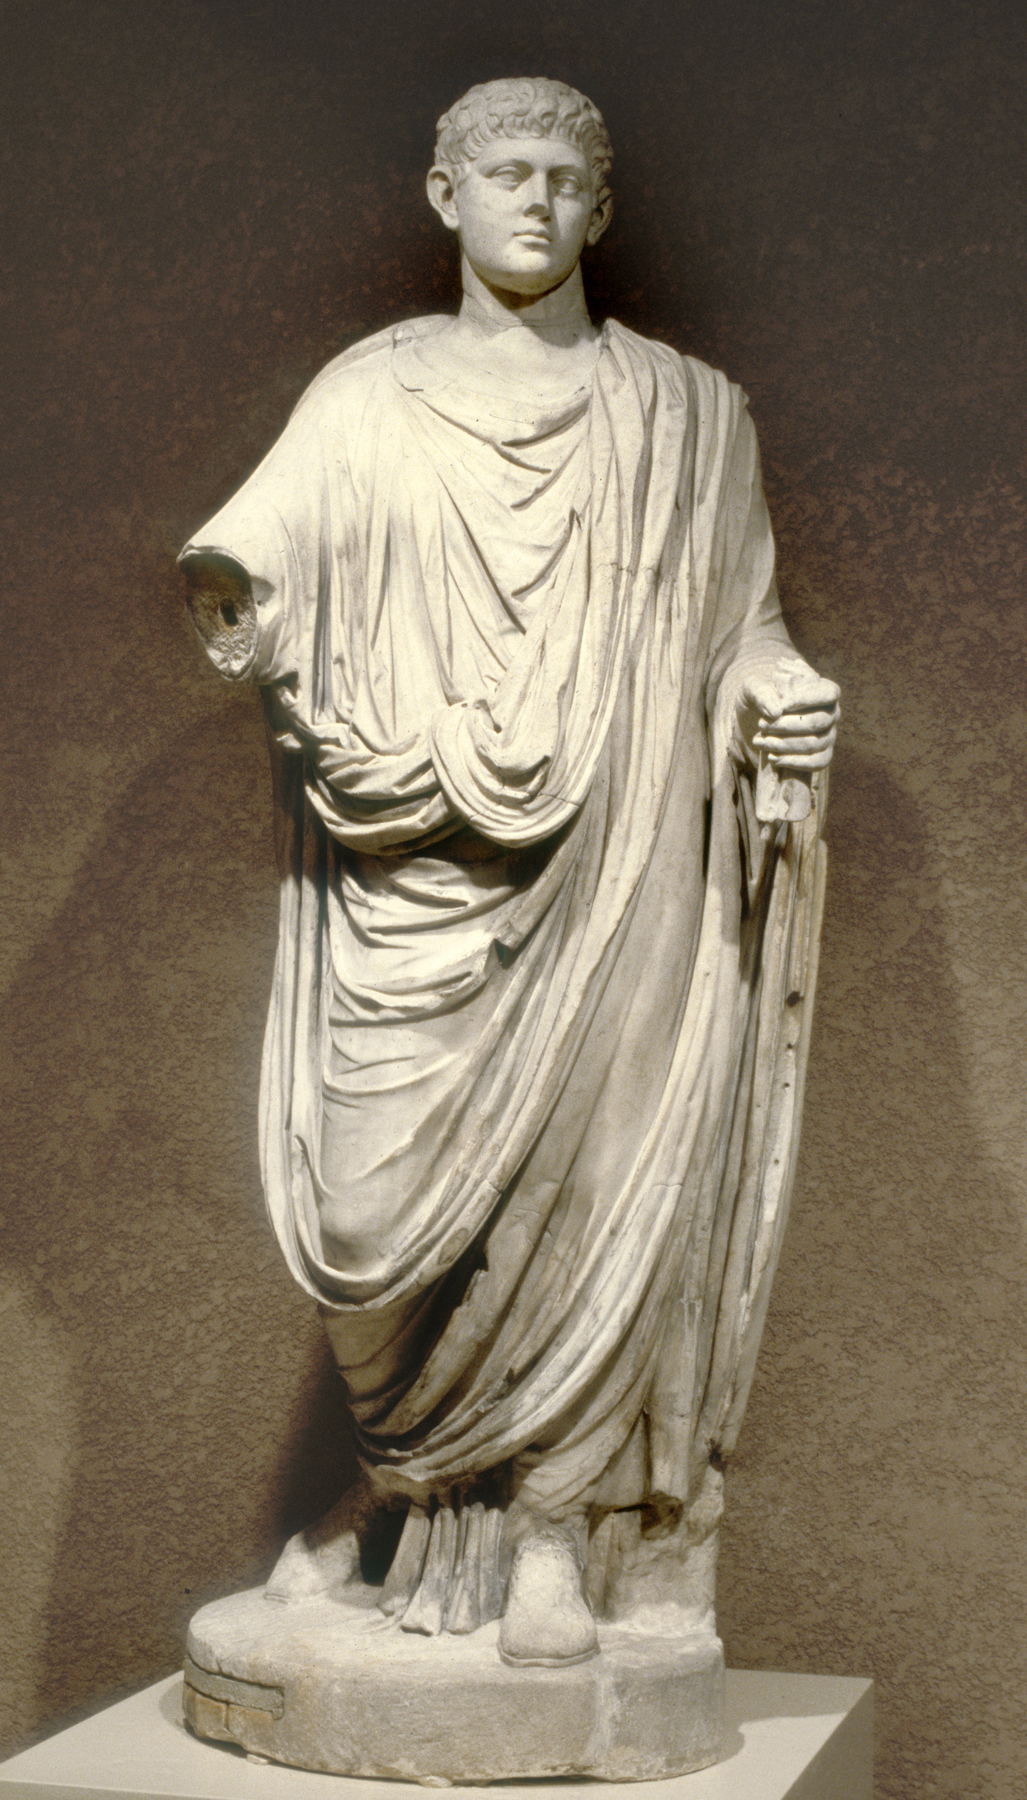 Emperor Wearing a Toga